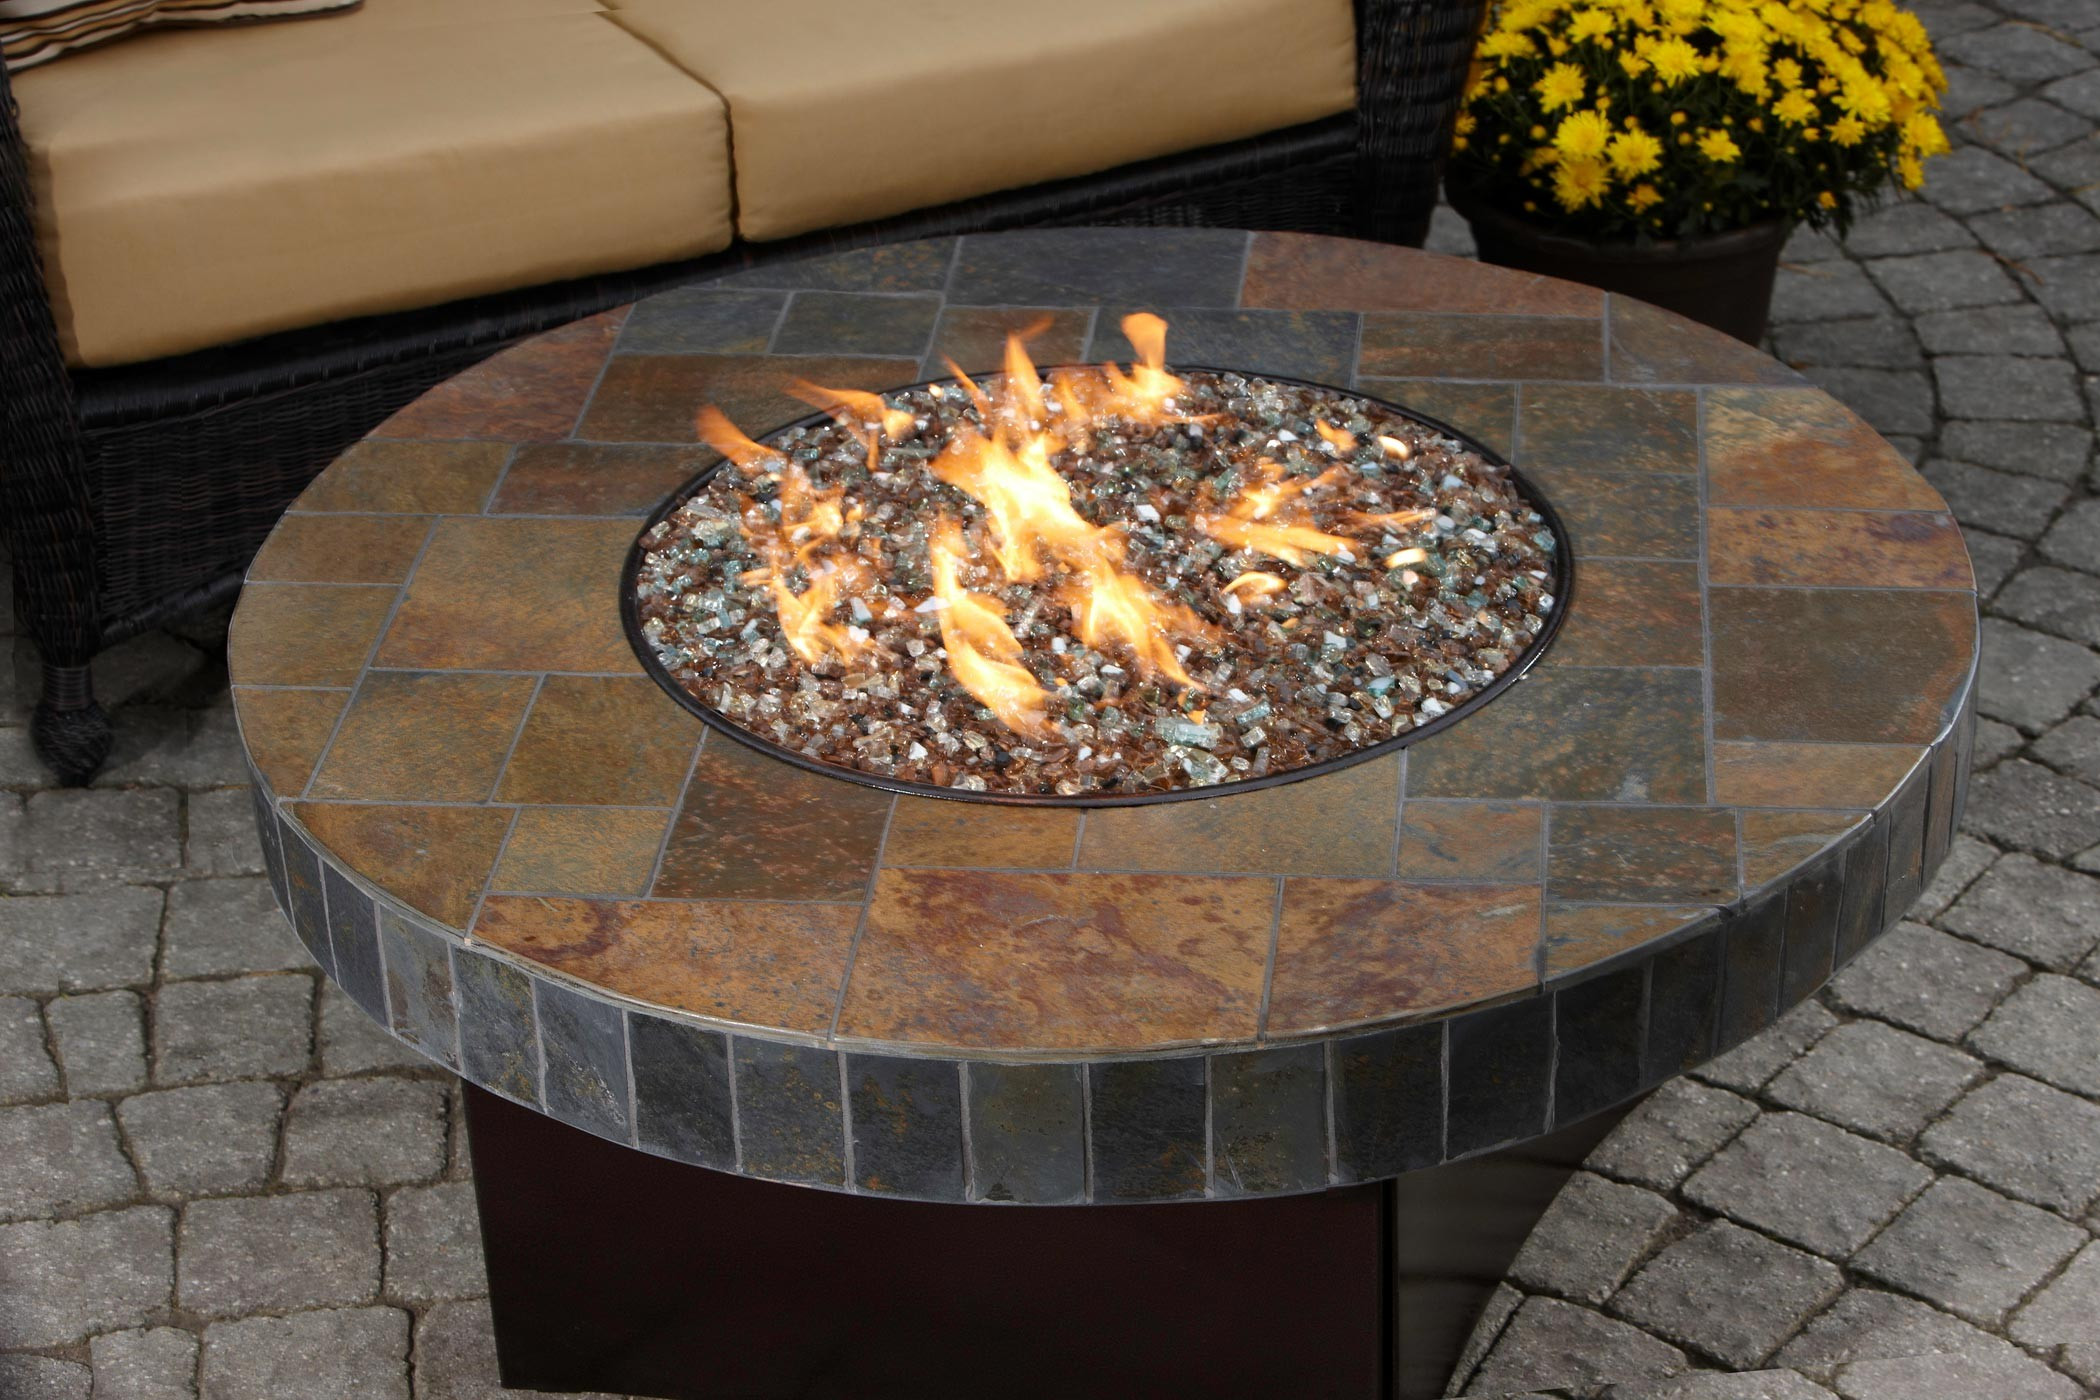 Best ideas about DIY Propane Fire Table . Save or Pin Diy Fire Pit Now.